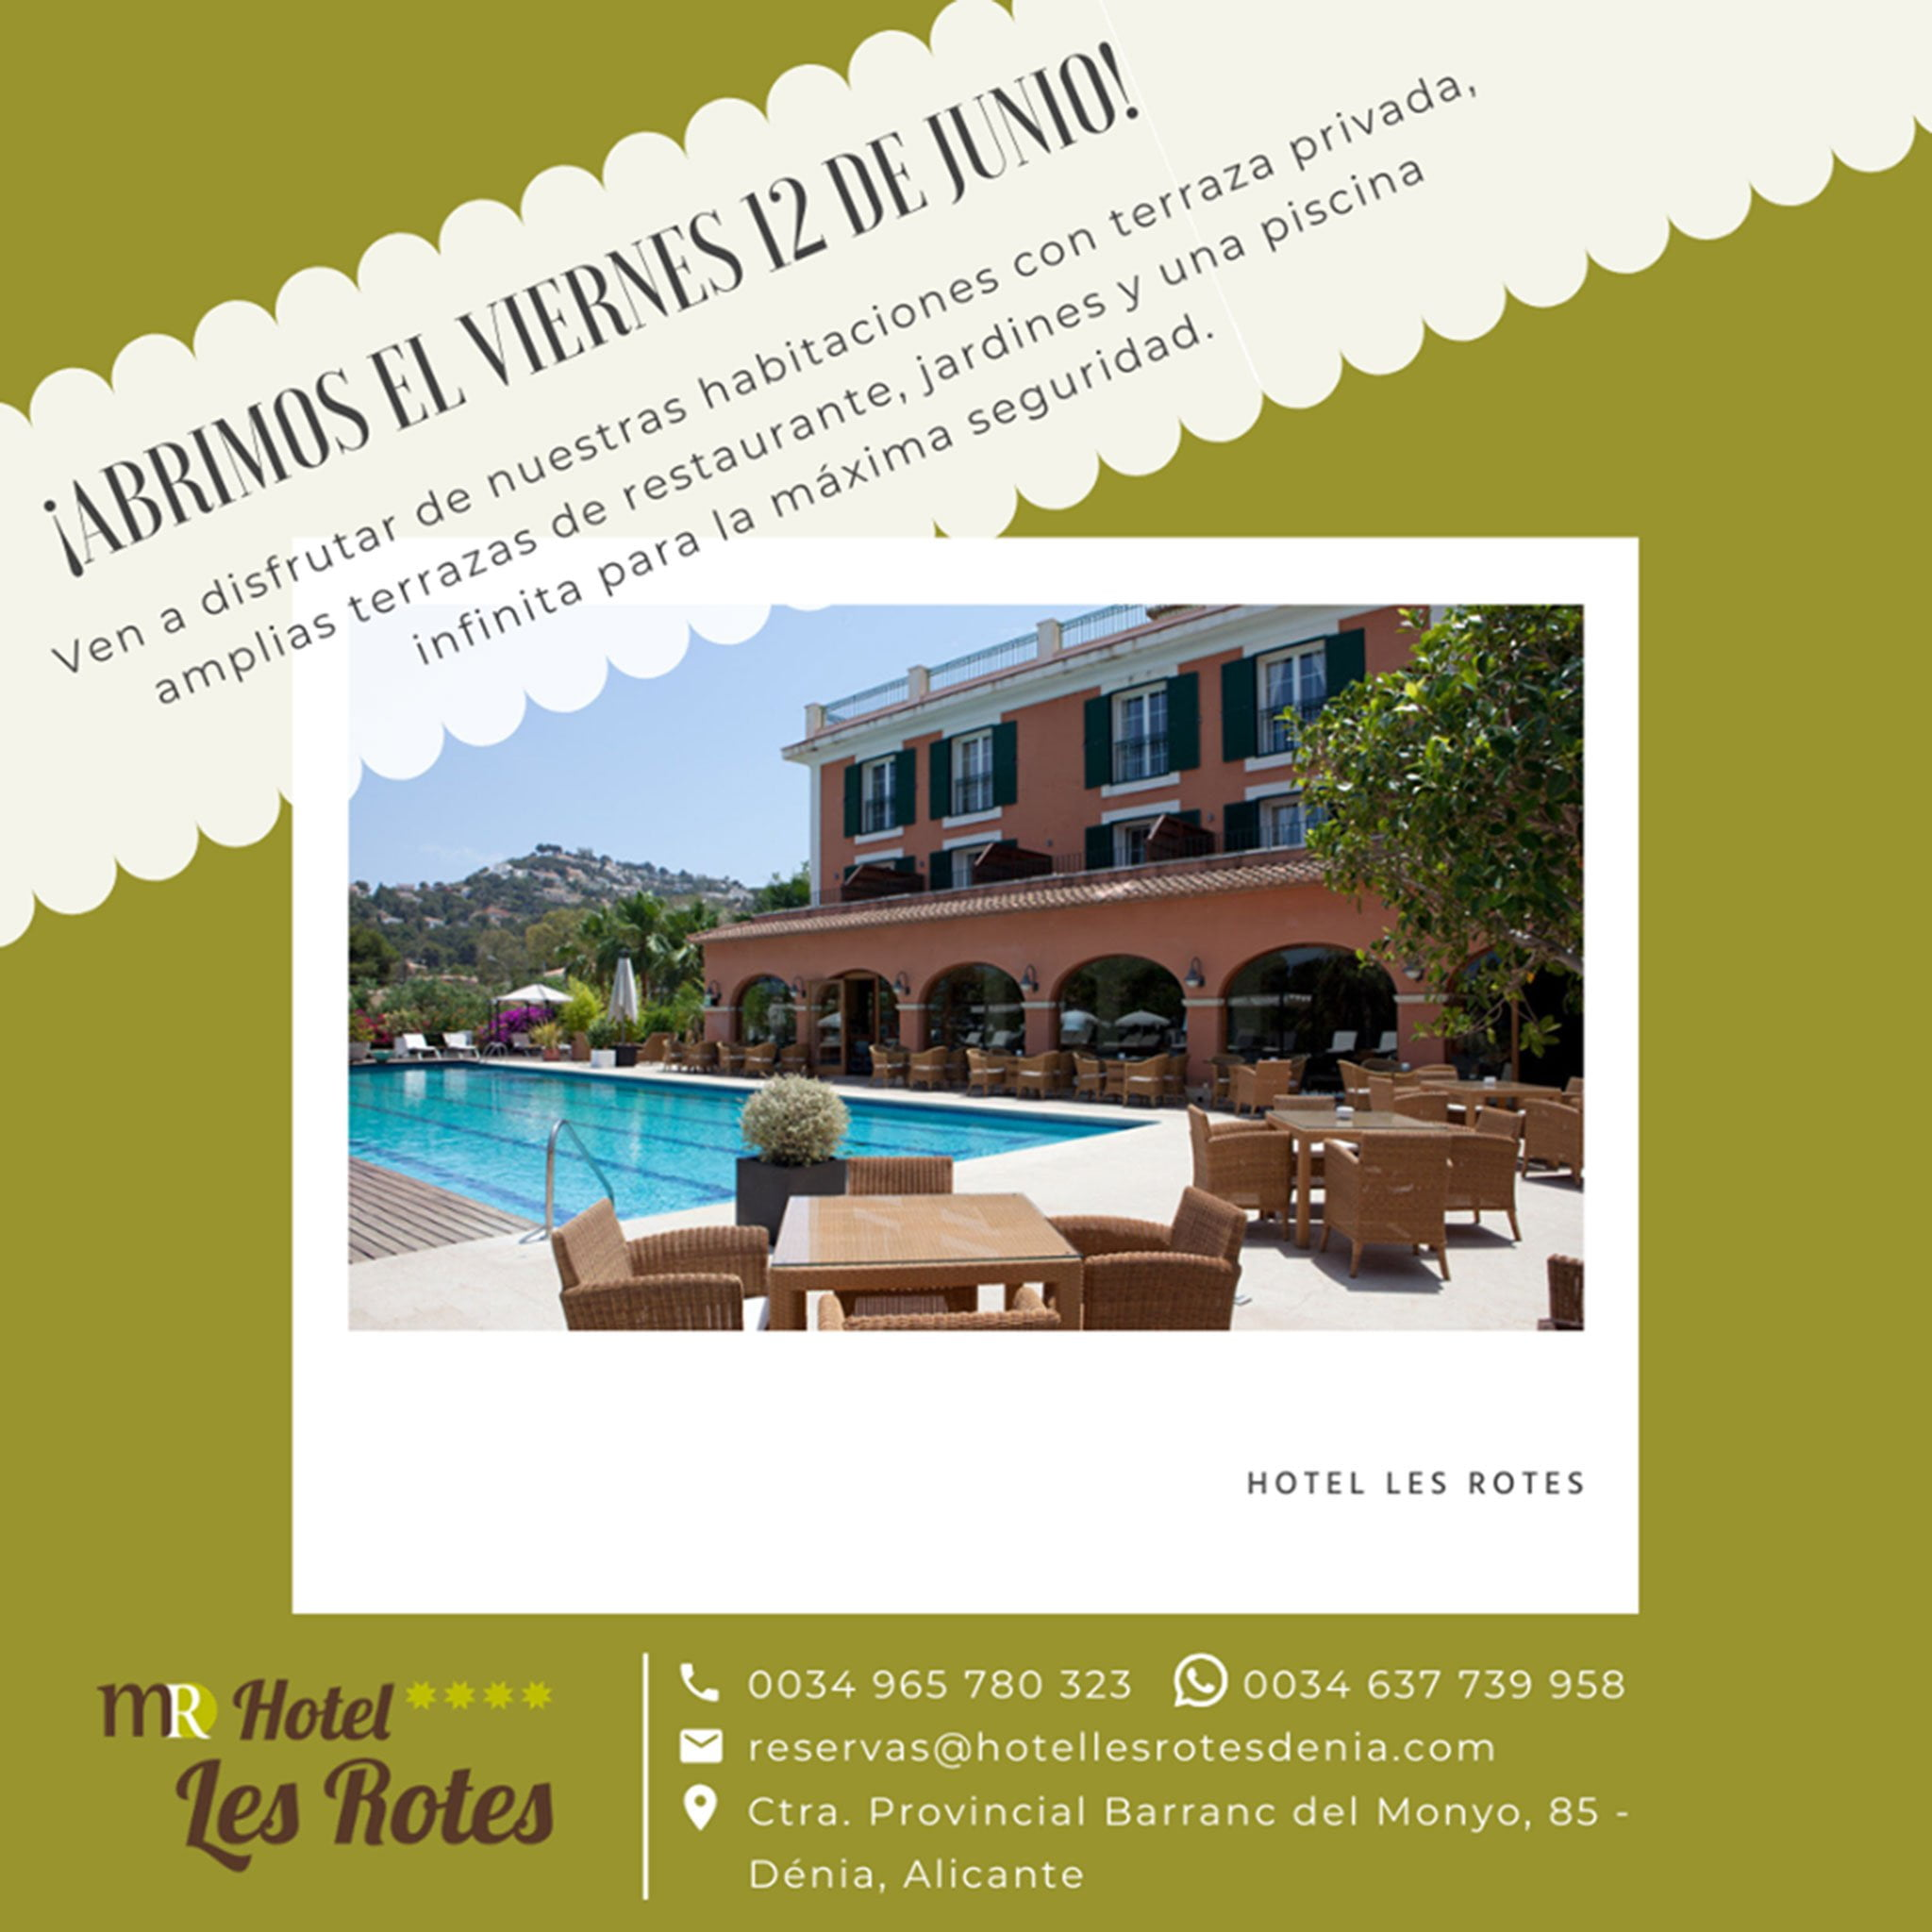 Hotel Les Rotes returns